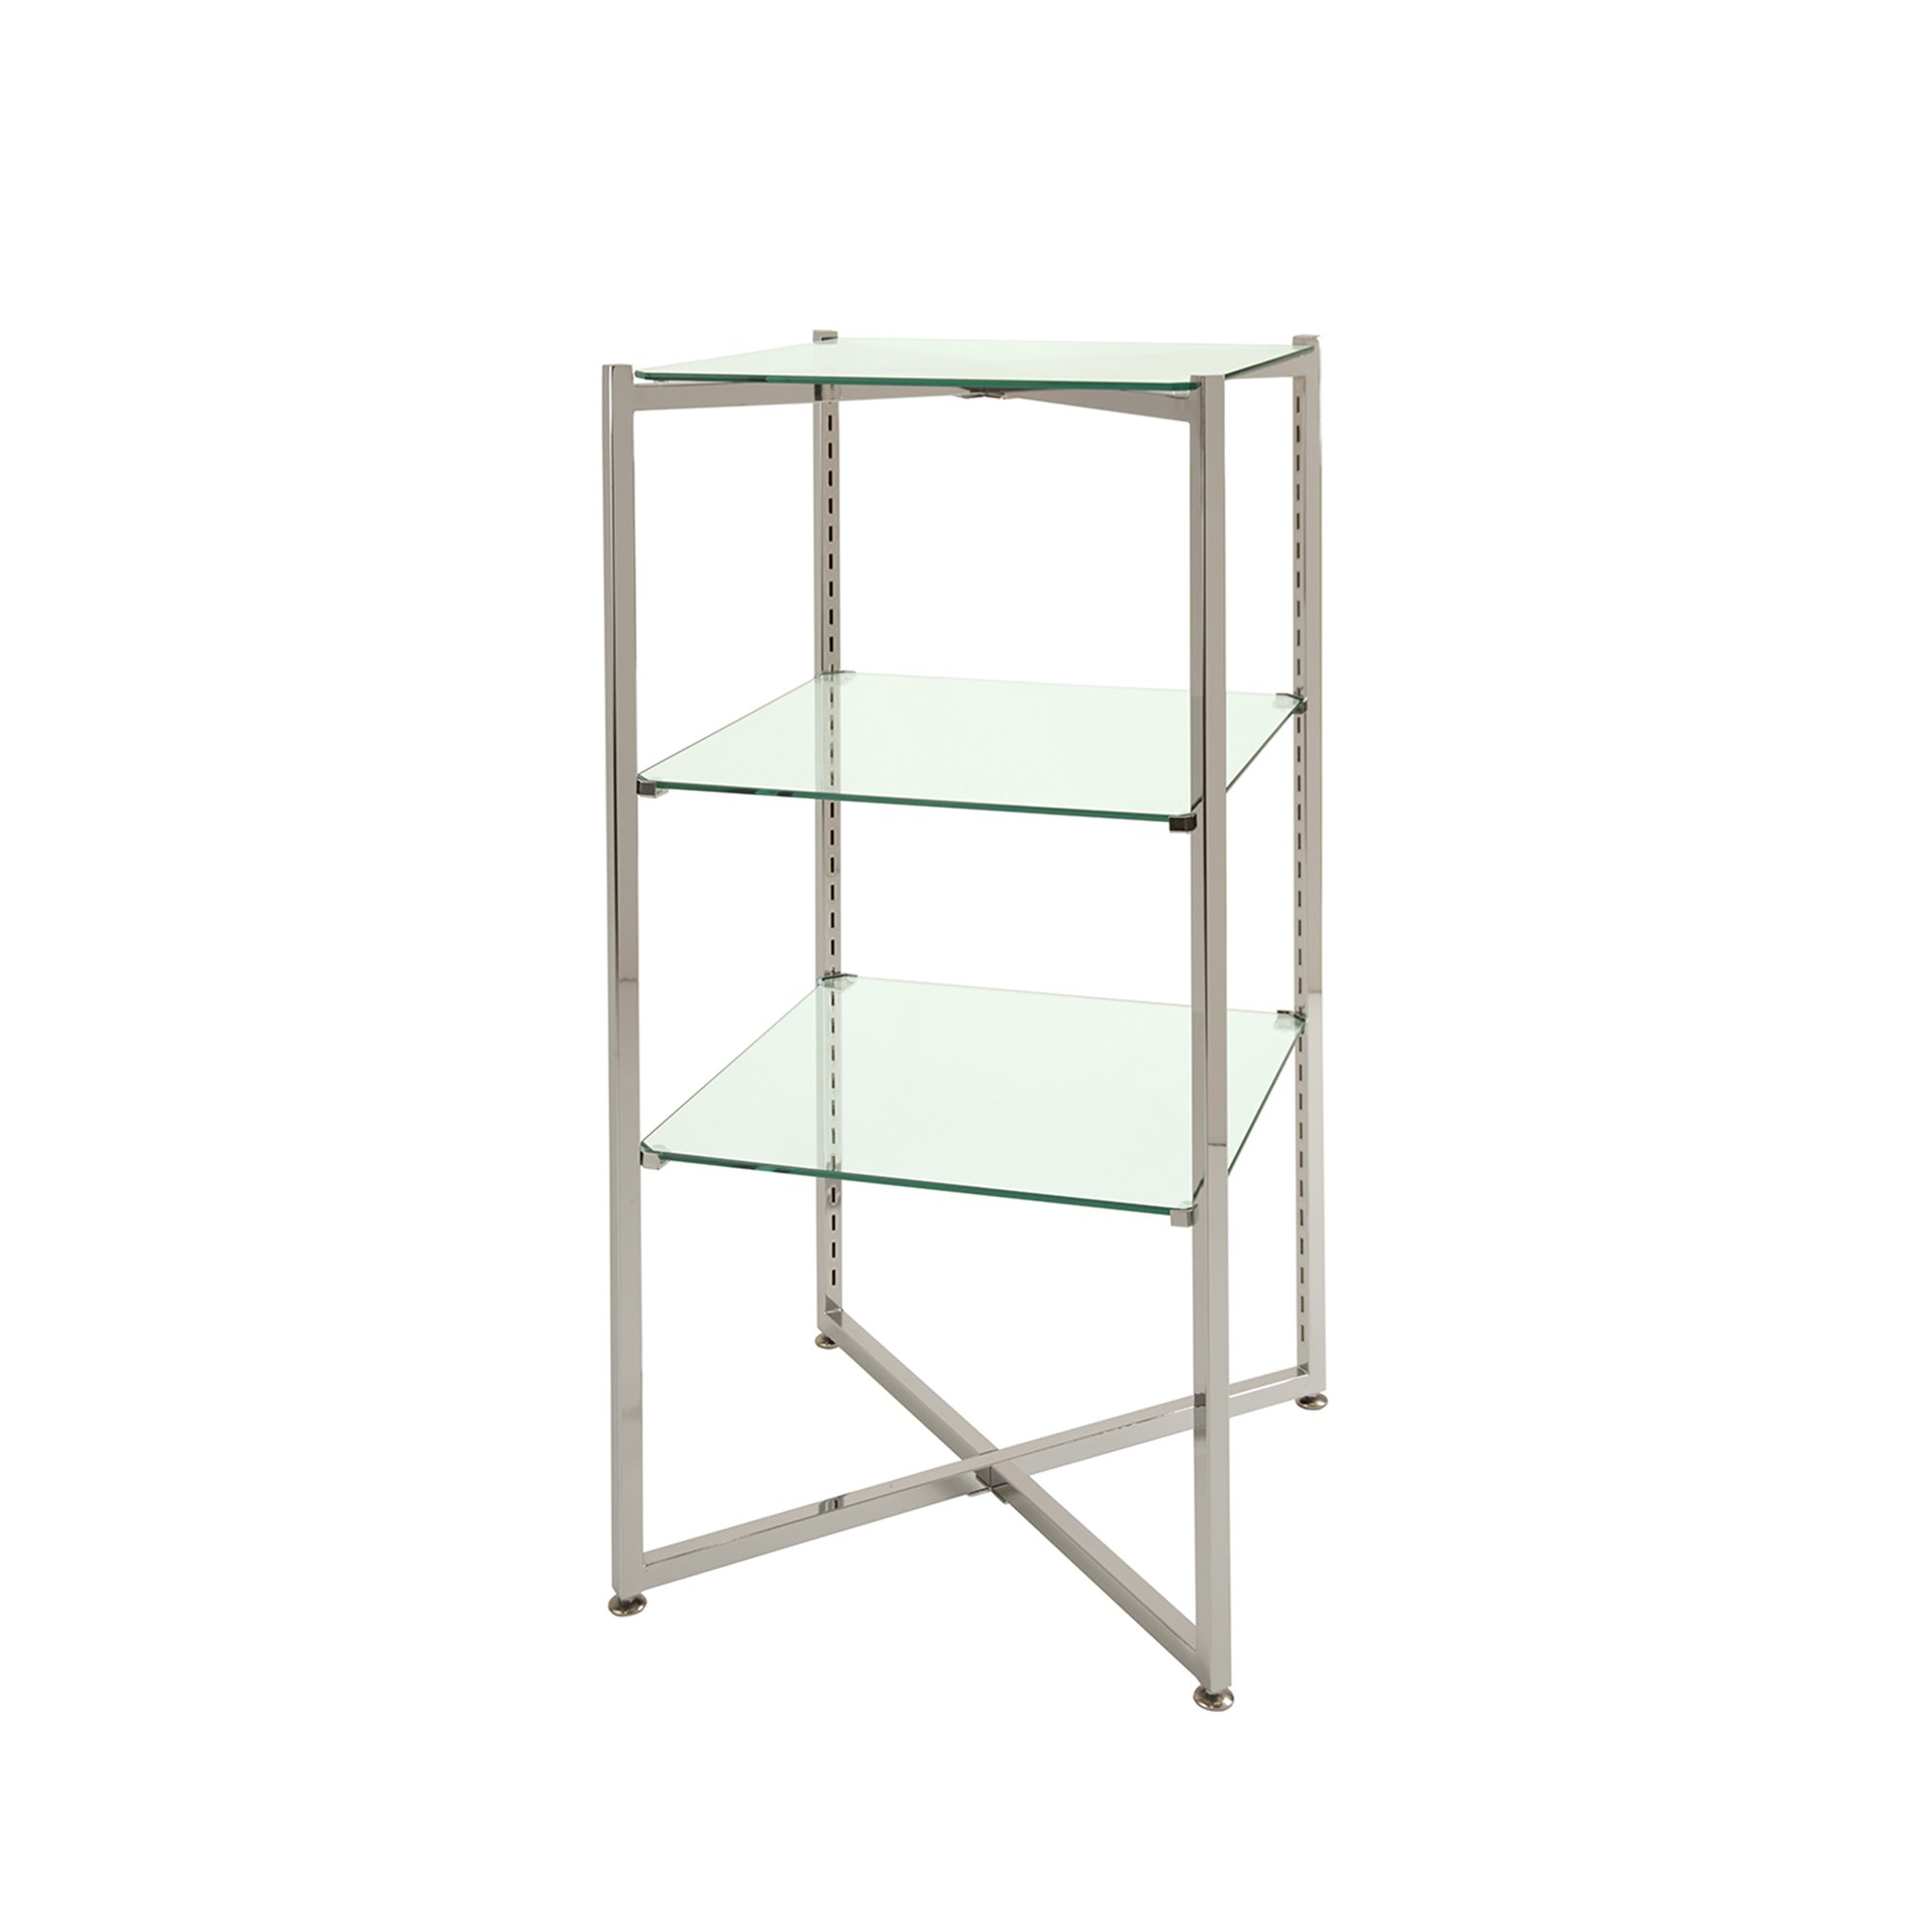 Econoco FLT37BCGLS Folding Glass Towers with Brushed Chrome Finish, 37''H x 18'' Square,